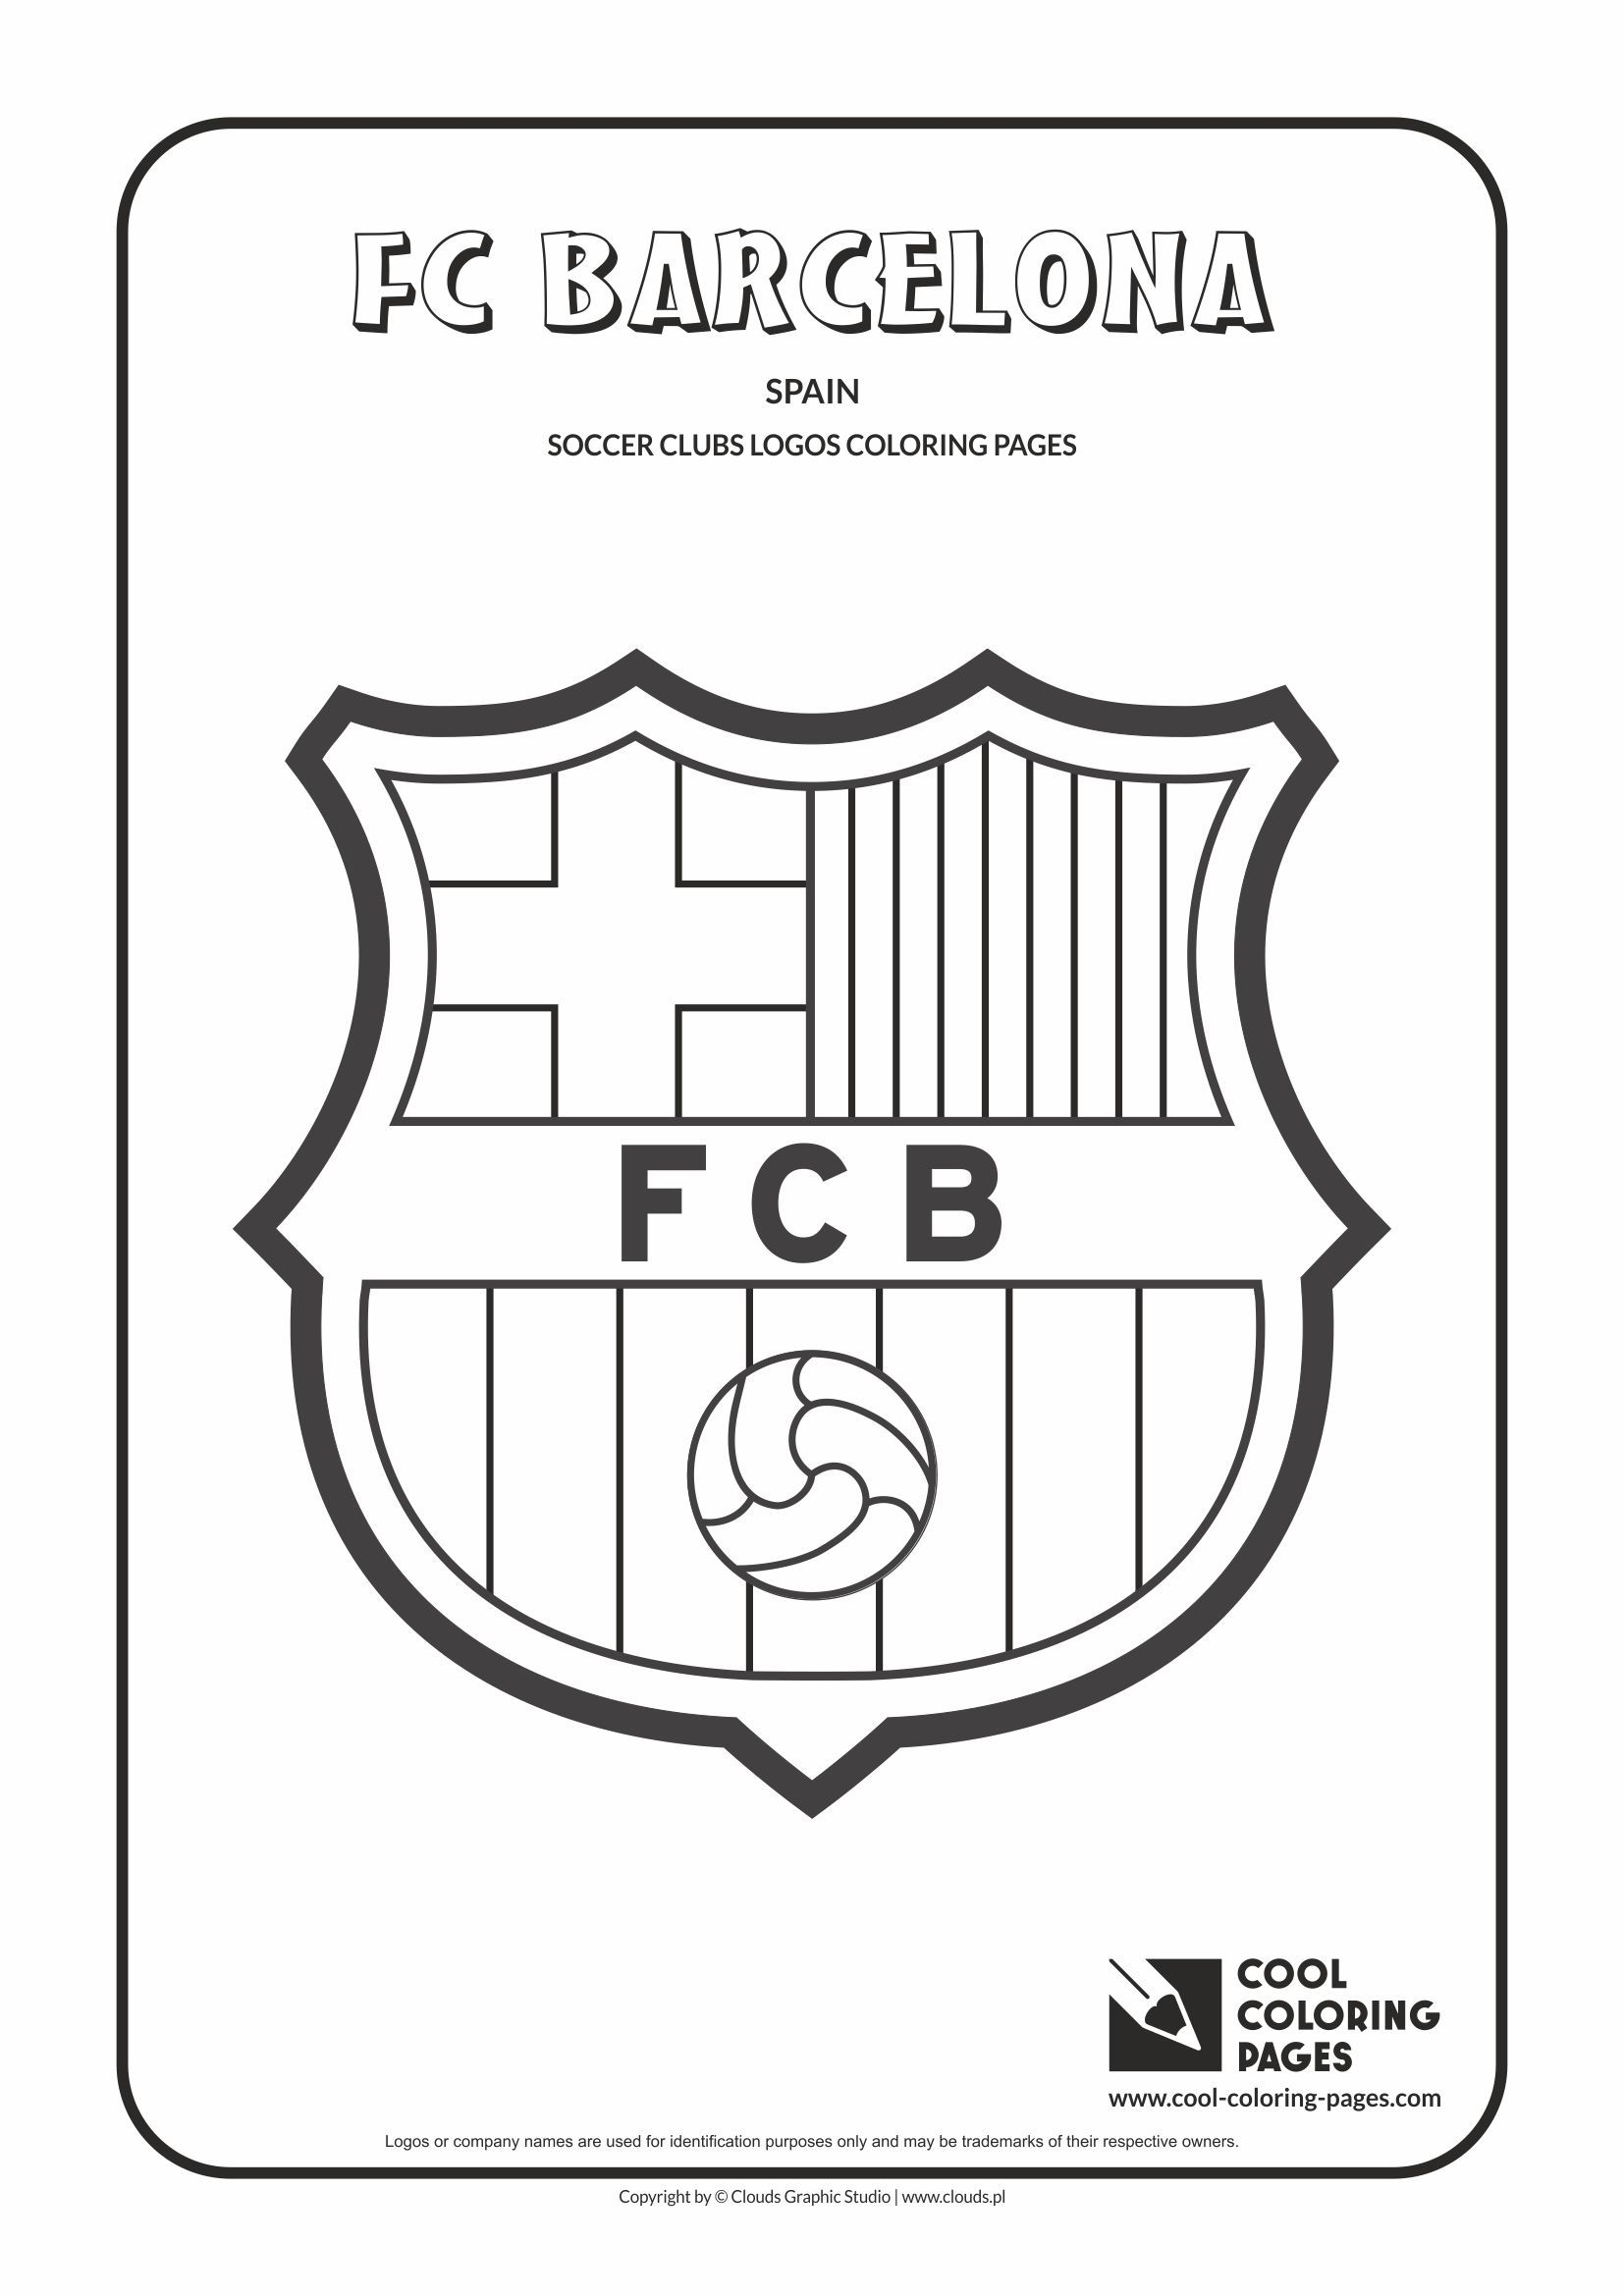 Cool Coloring Pages - Others / FC Barcelona logo / Coloring page ...